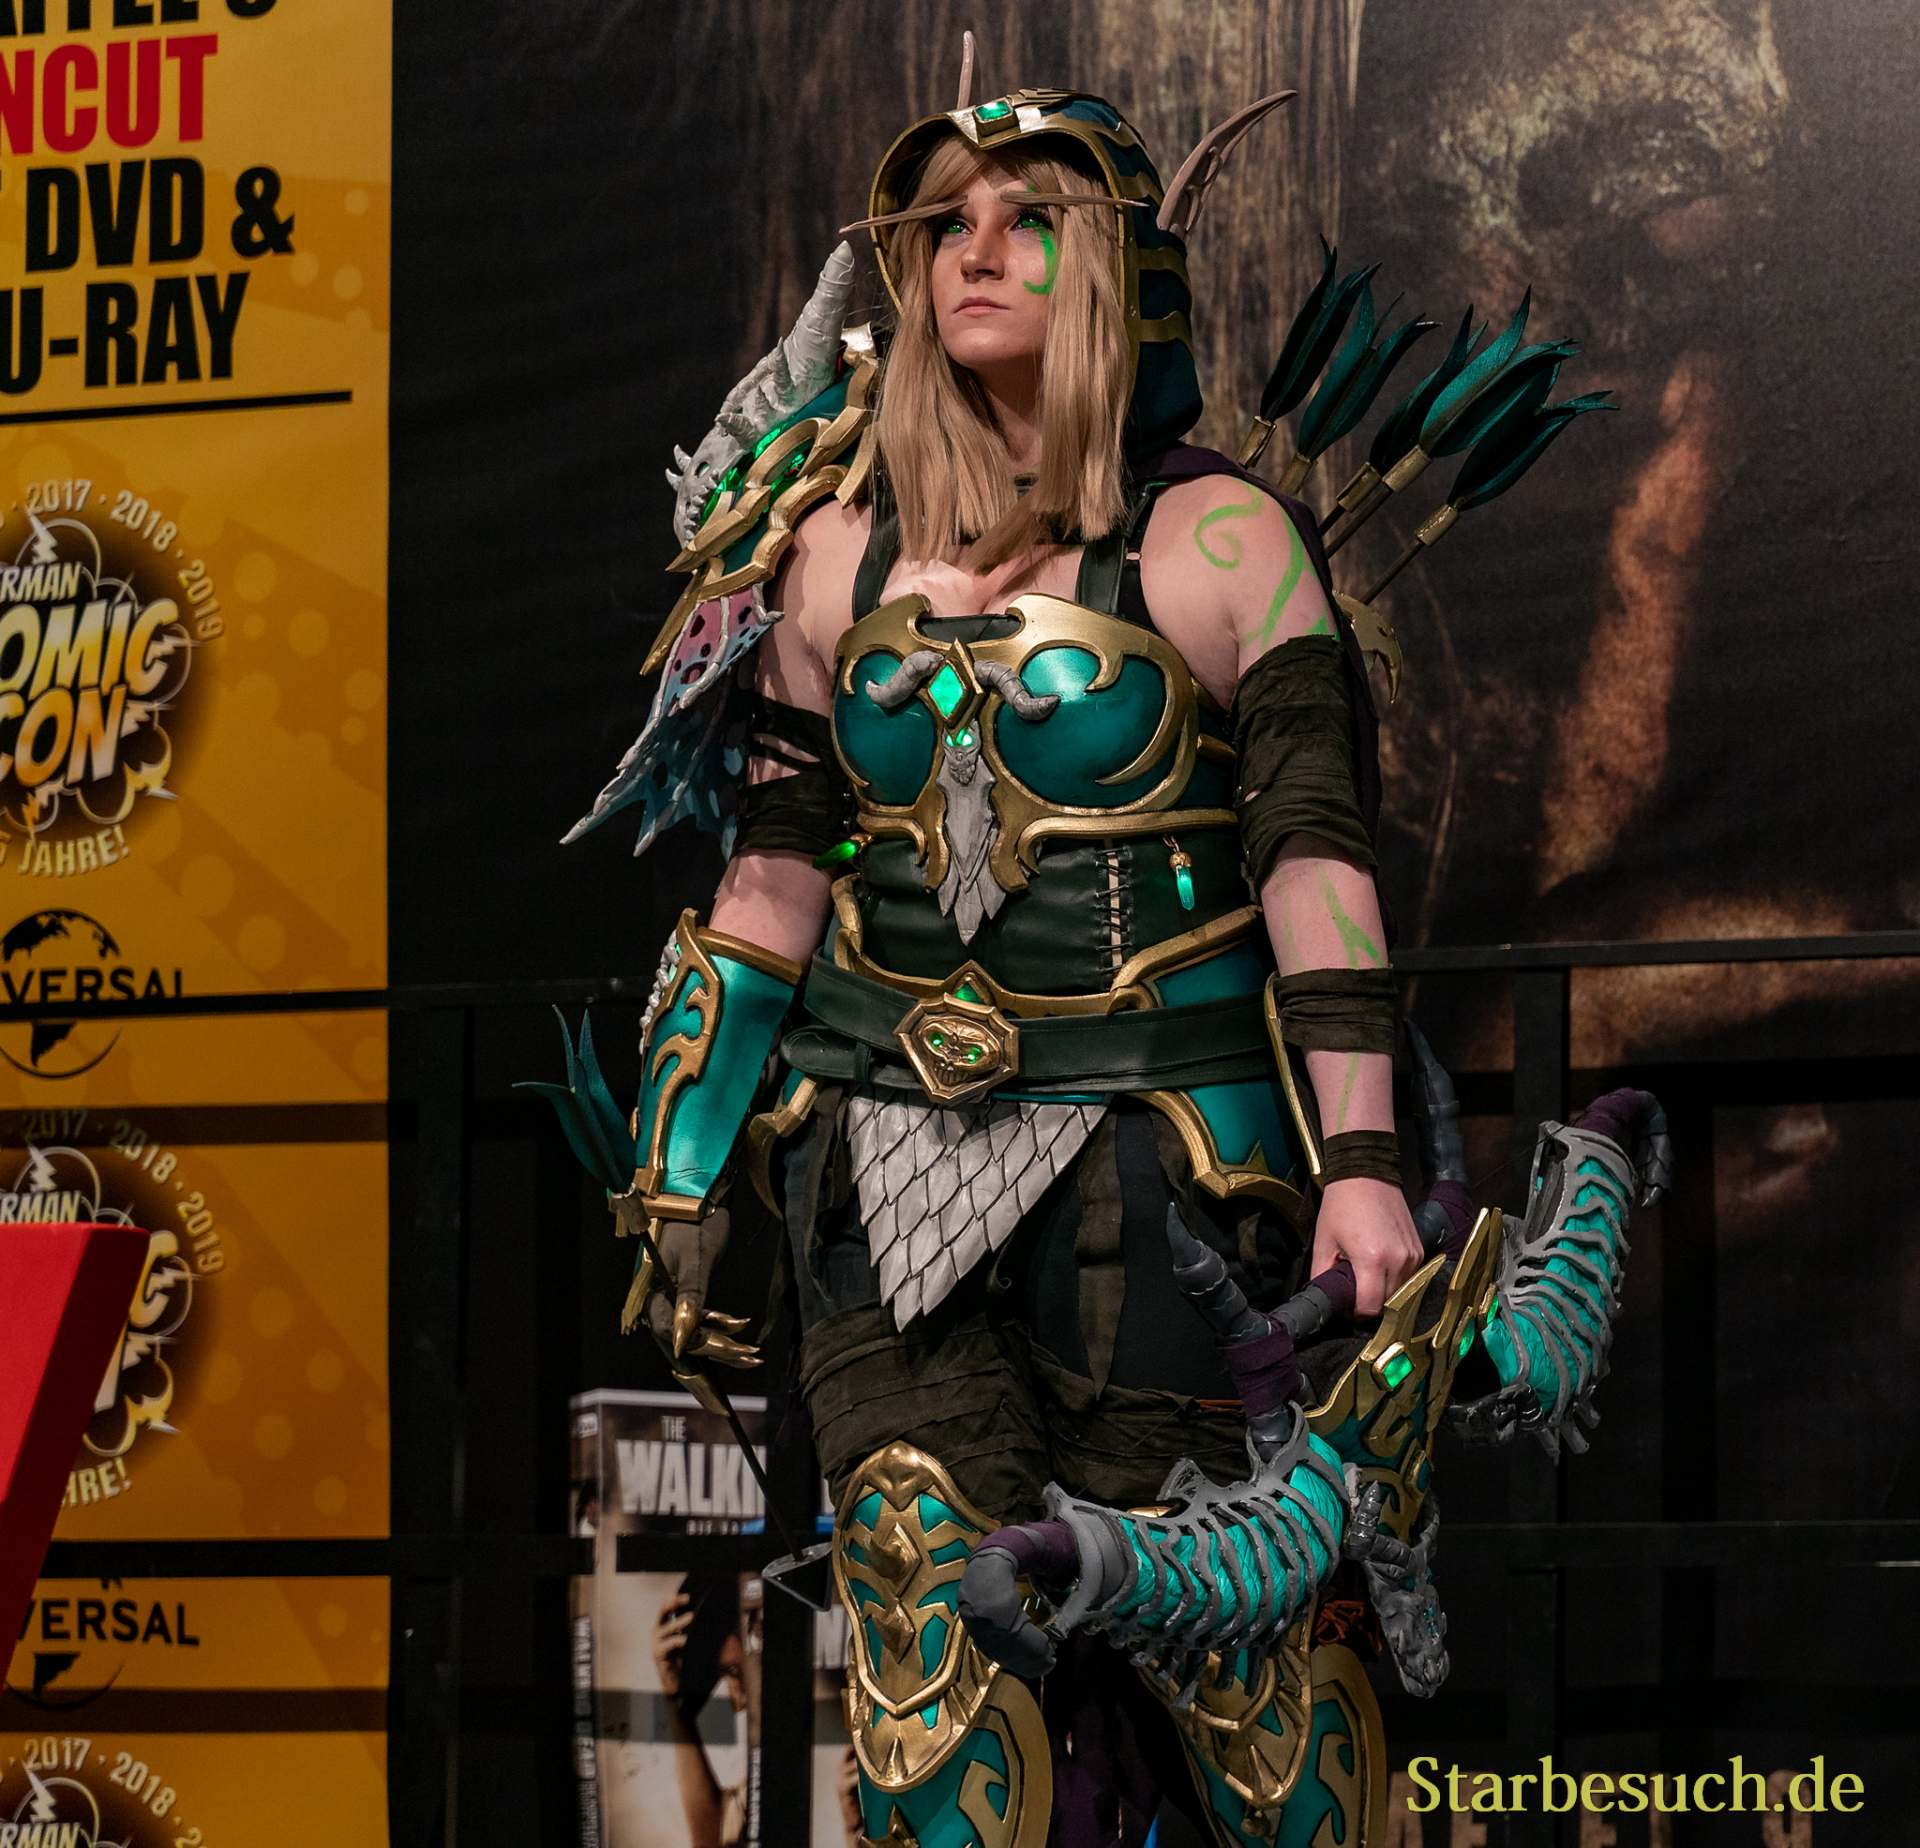 Cosplay - Nicana Cosplay als Alleria Windrunner vom WoW Project Ebonblade Version